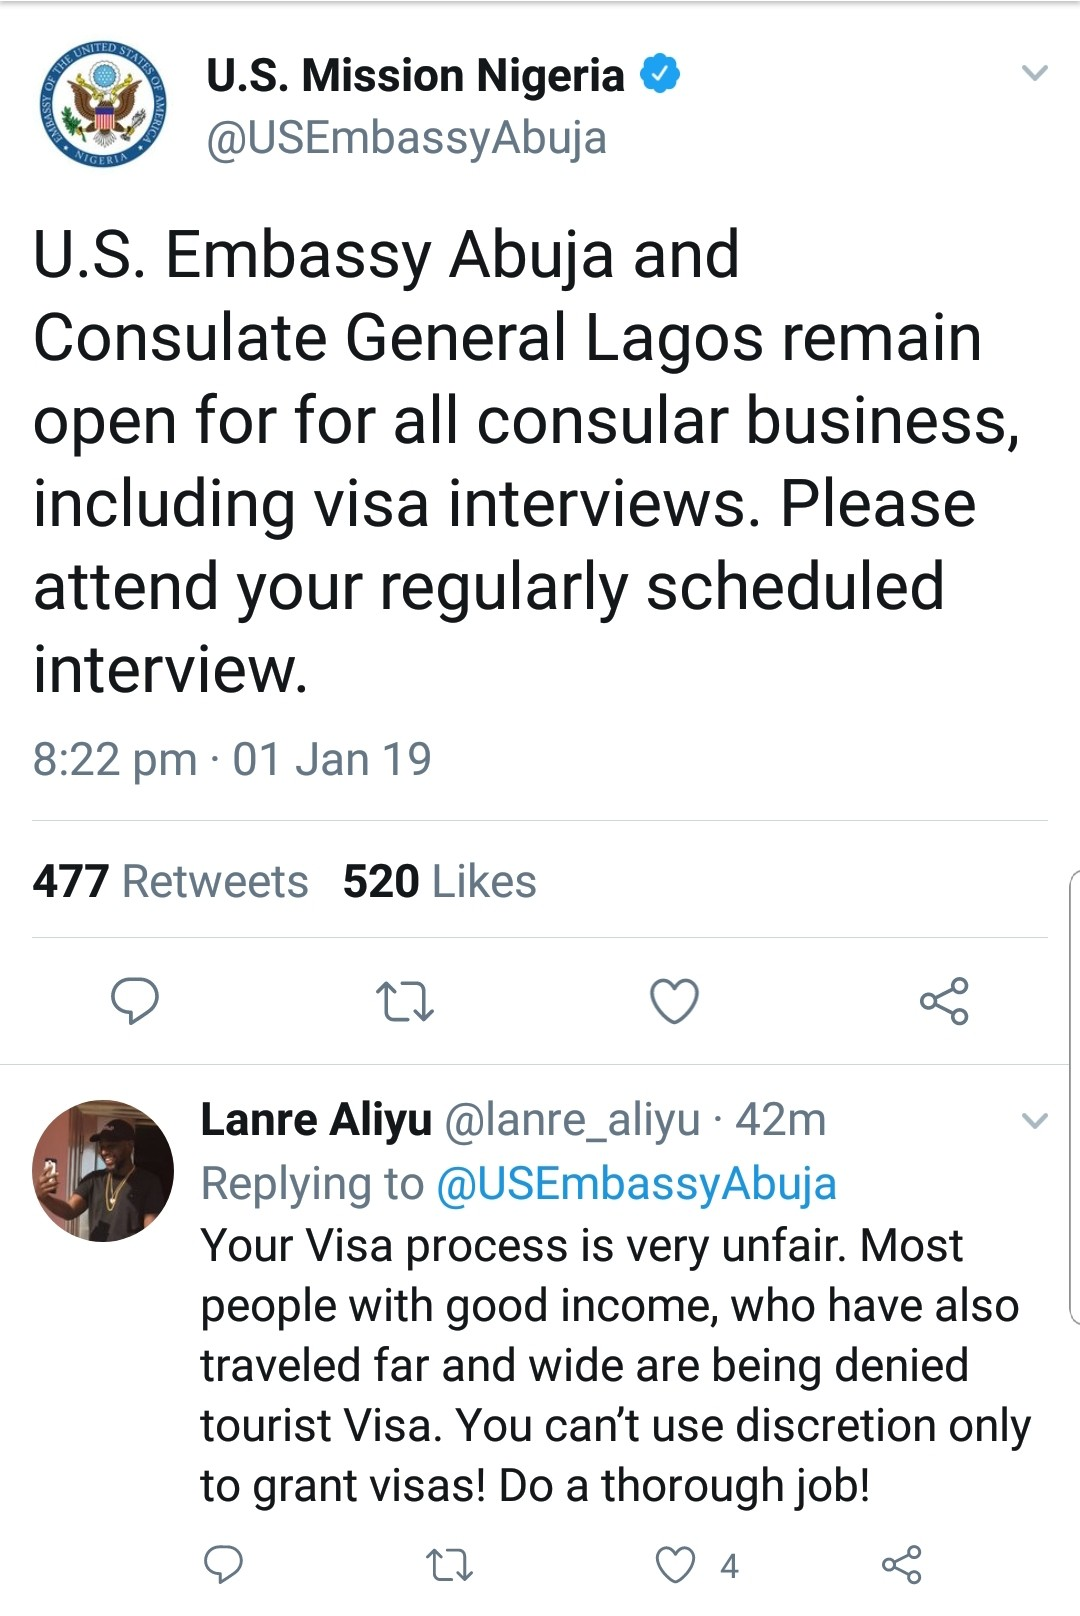 US embassy says visa interviews will still hold in Abuja and Lagos consulates